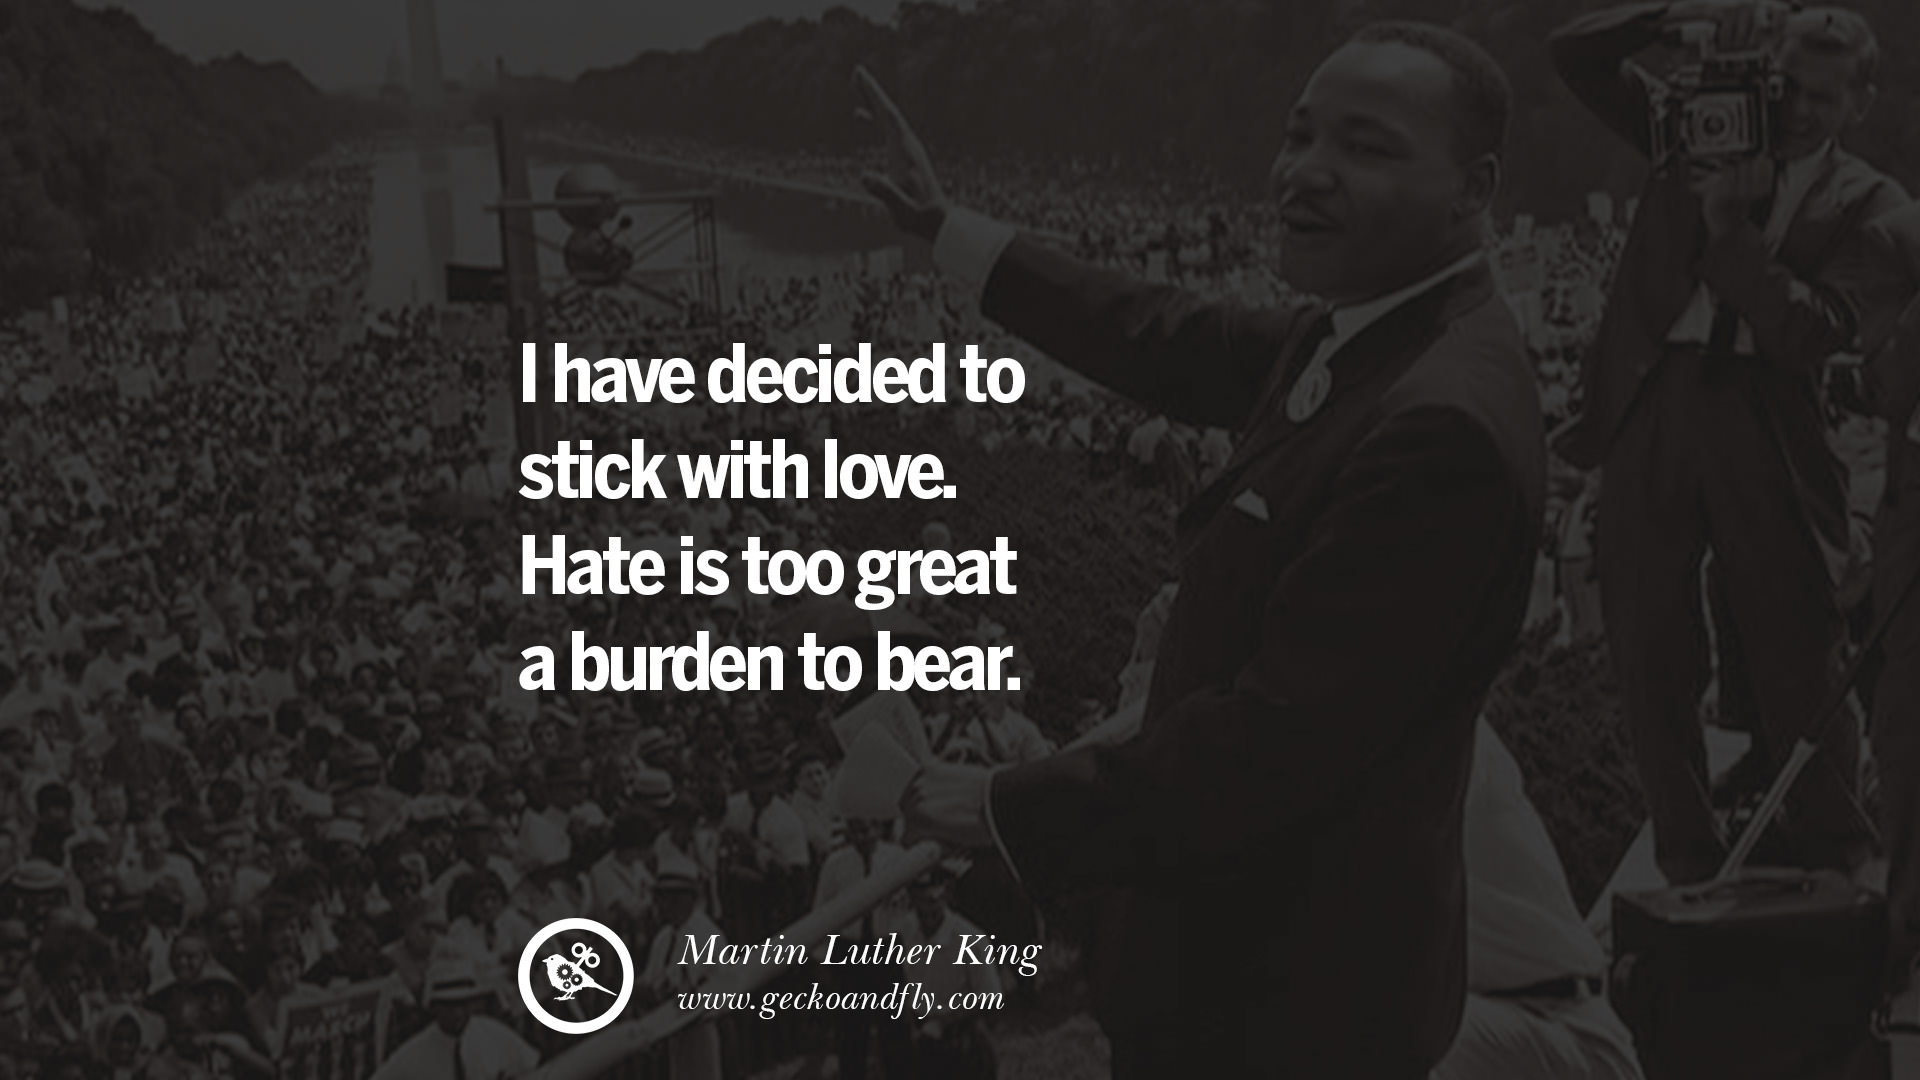 Martin Luther King Love Quotes 30 Powerful Martin Luther King Jr Quotes On Equality Rights Black